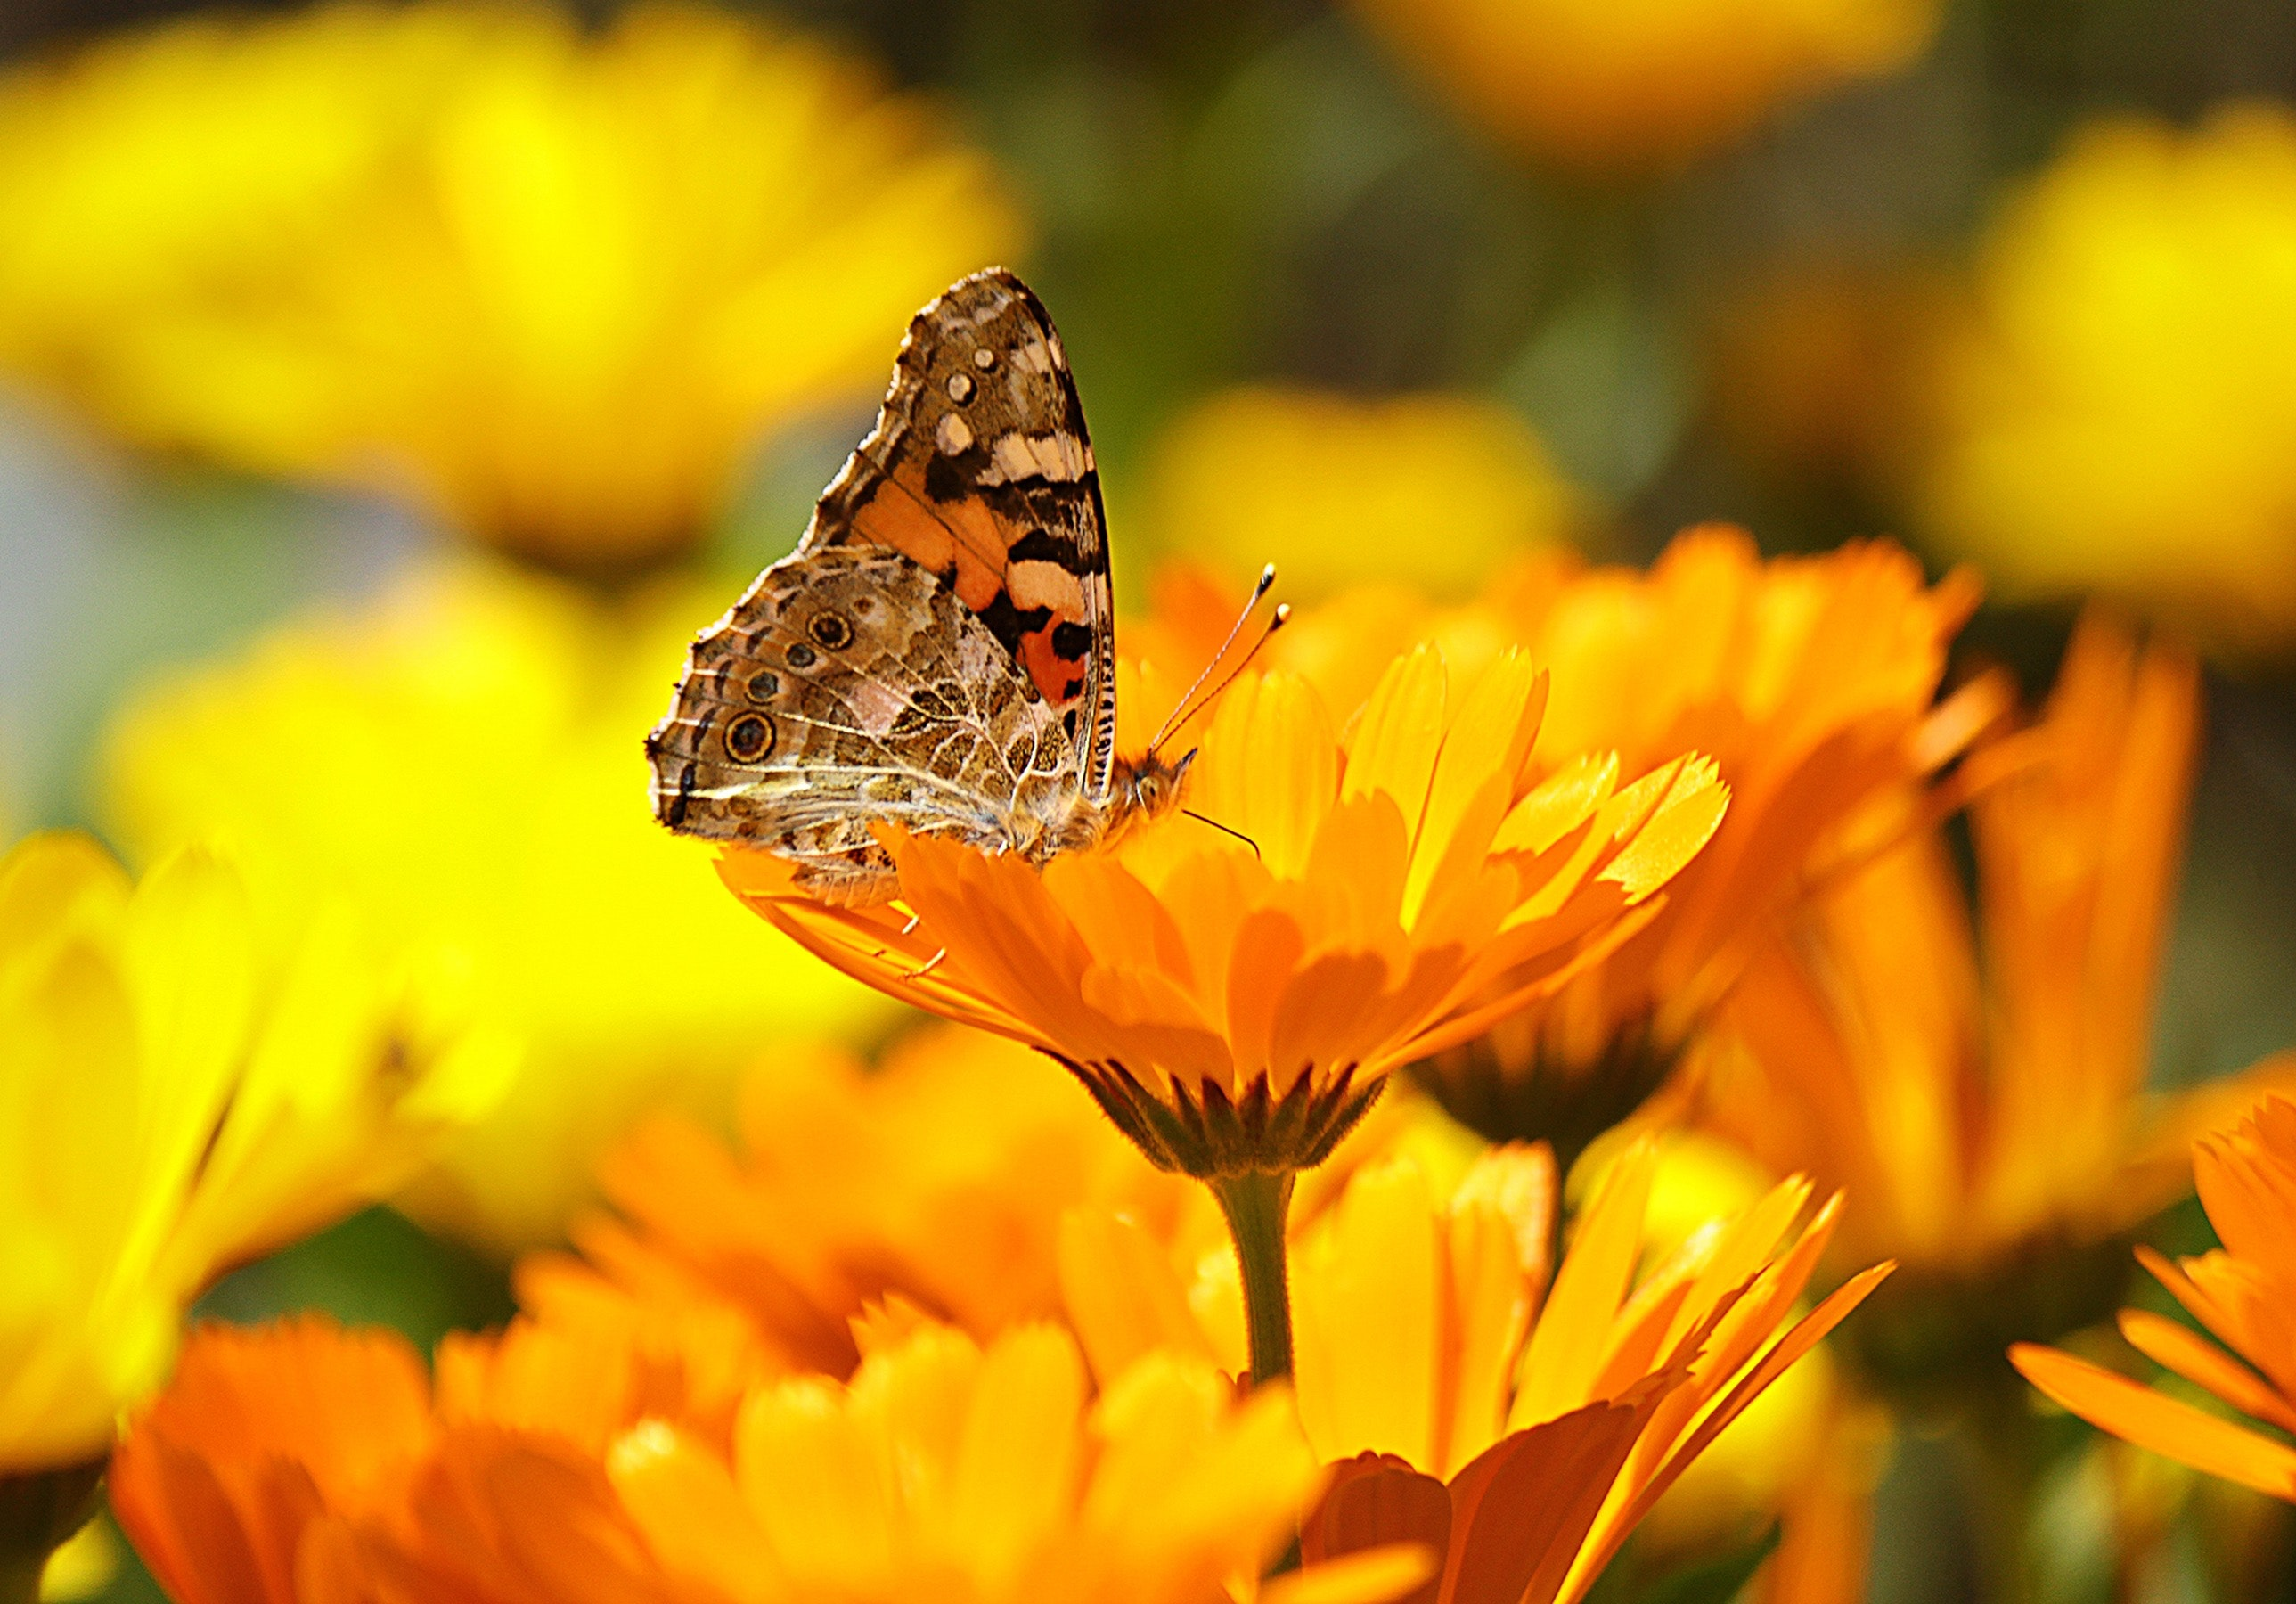 Butterfly perched on the yellow petaled flower during daytime photo